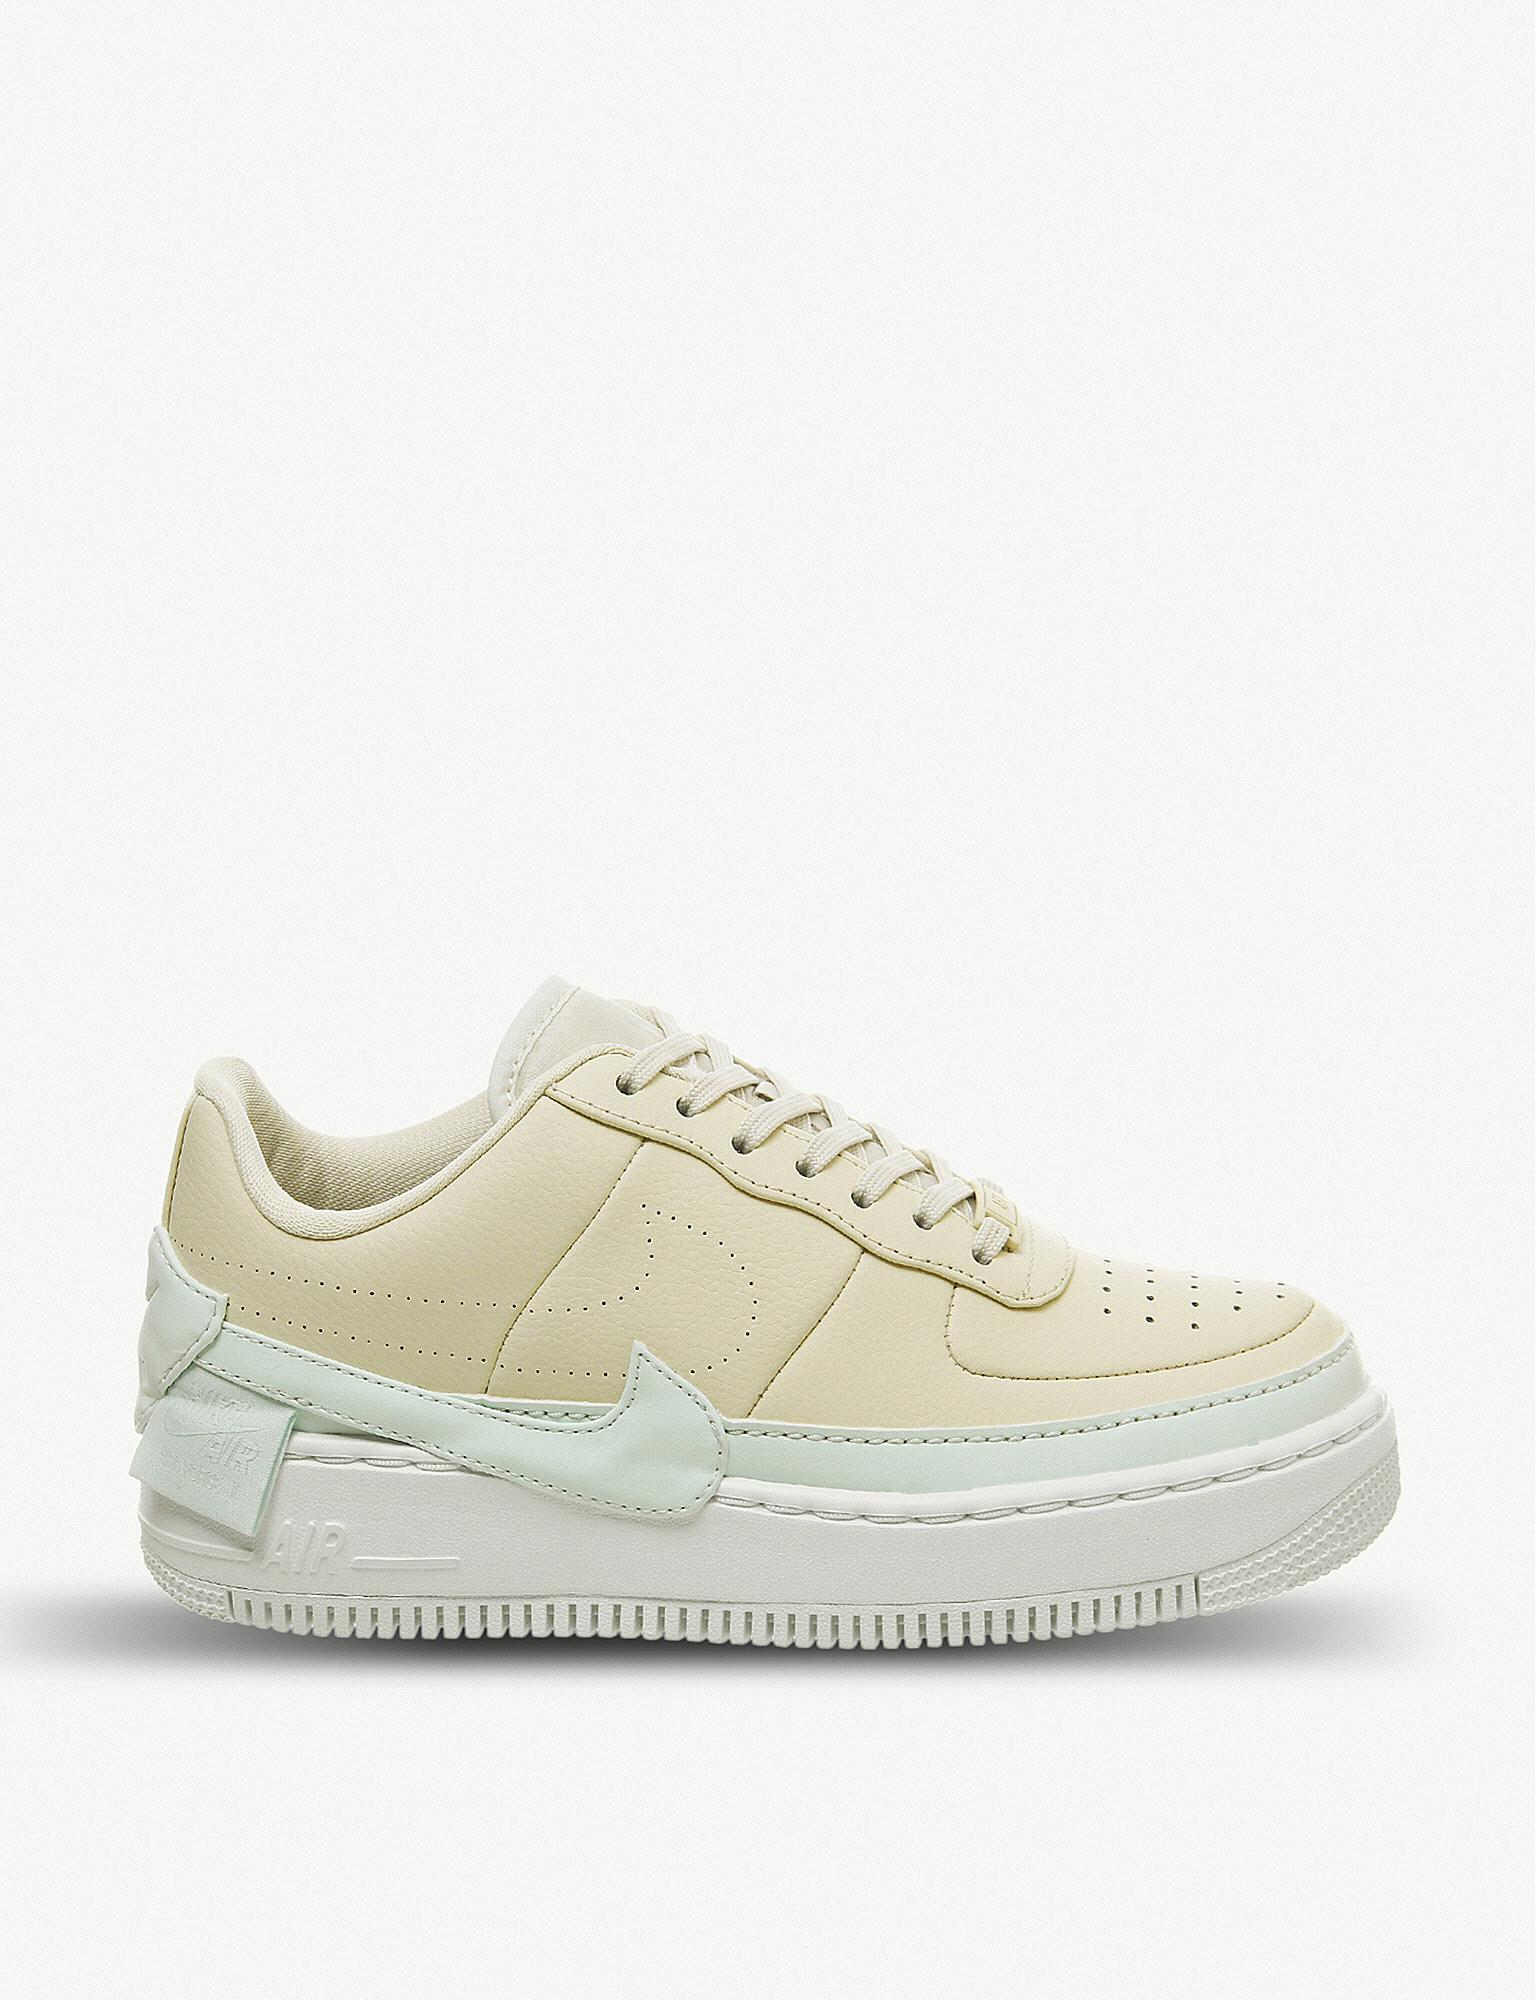 Nike Air Force 1 Jester Xx Leather Trainers for Men - Lyst 96ff685da